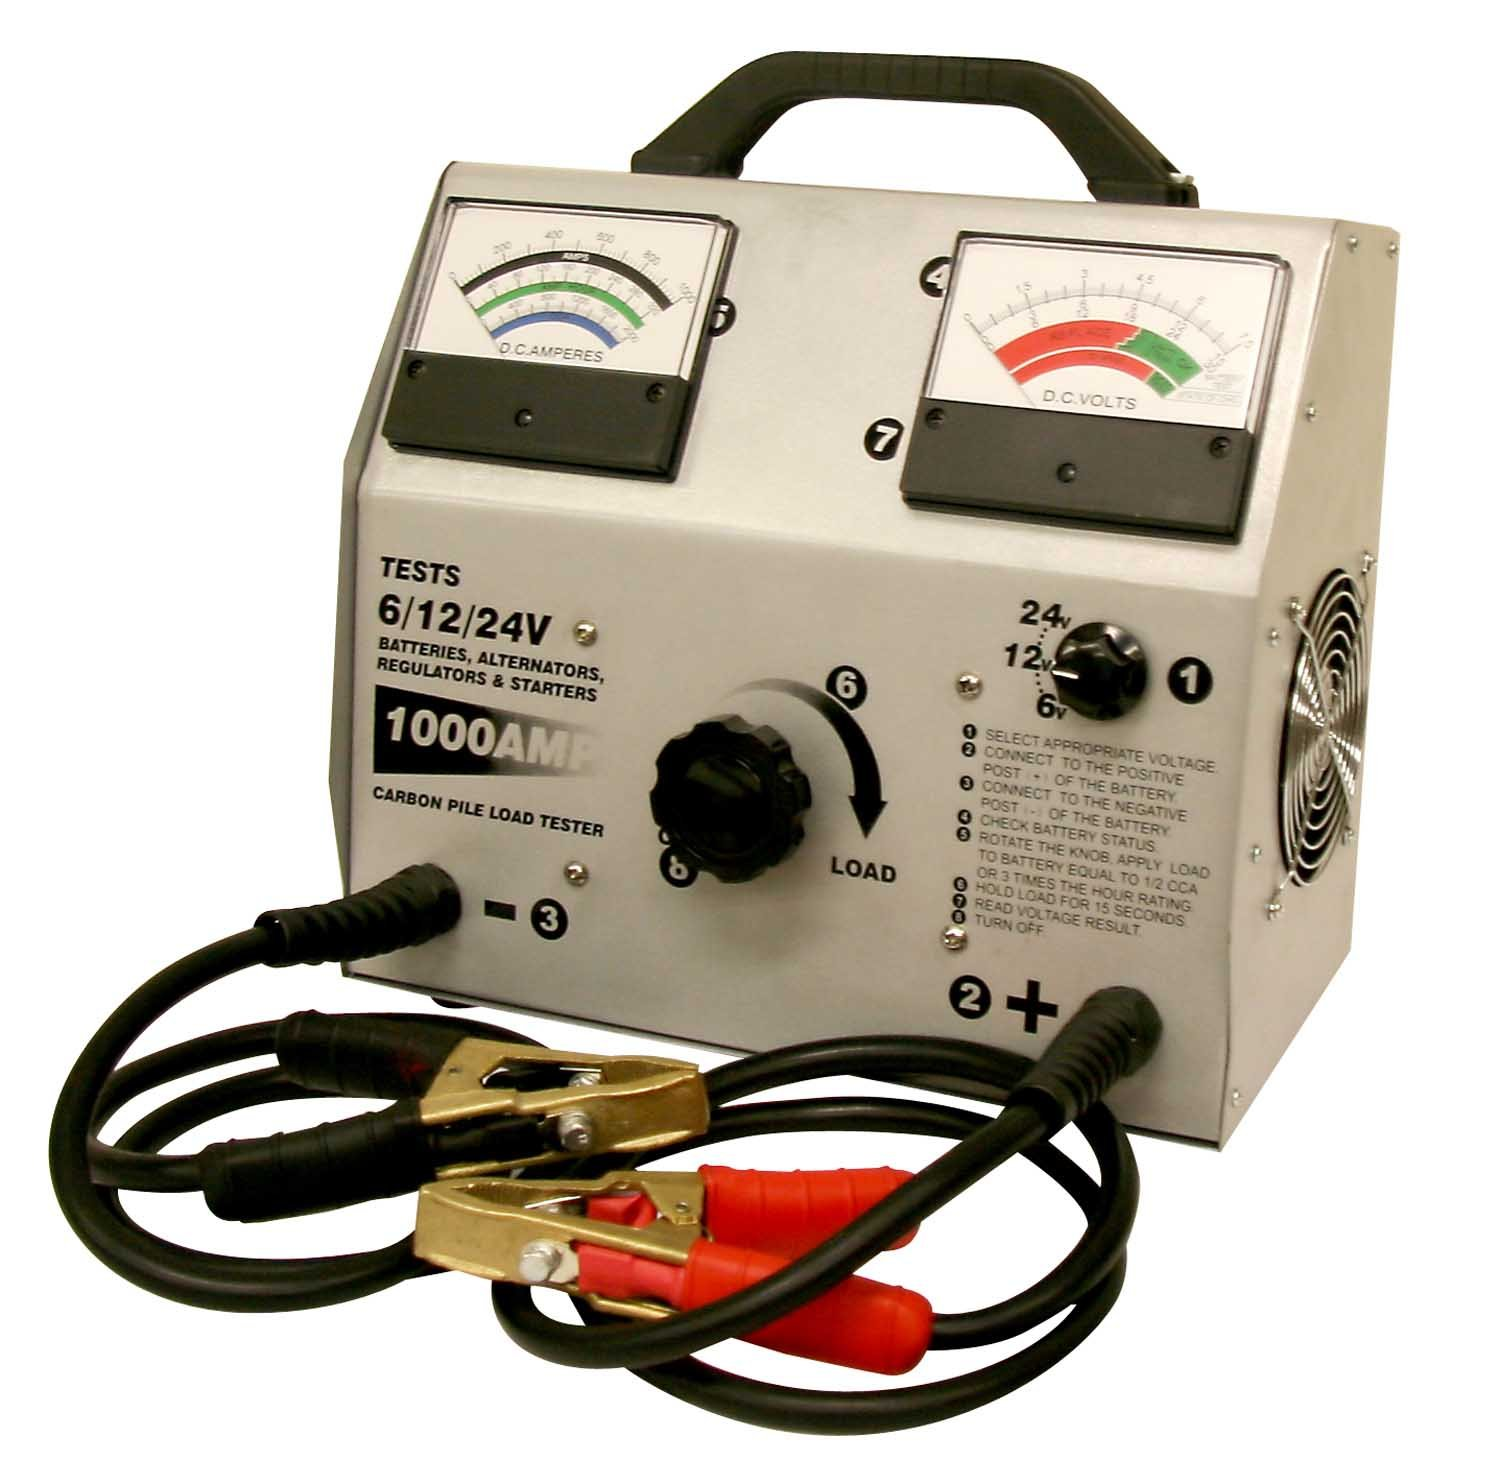 FJC (45118) 1000 Amp Carbon Pile Battery Tester by FJC (Image #1)